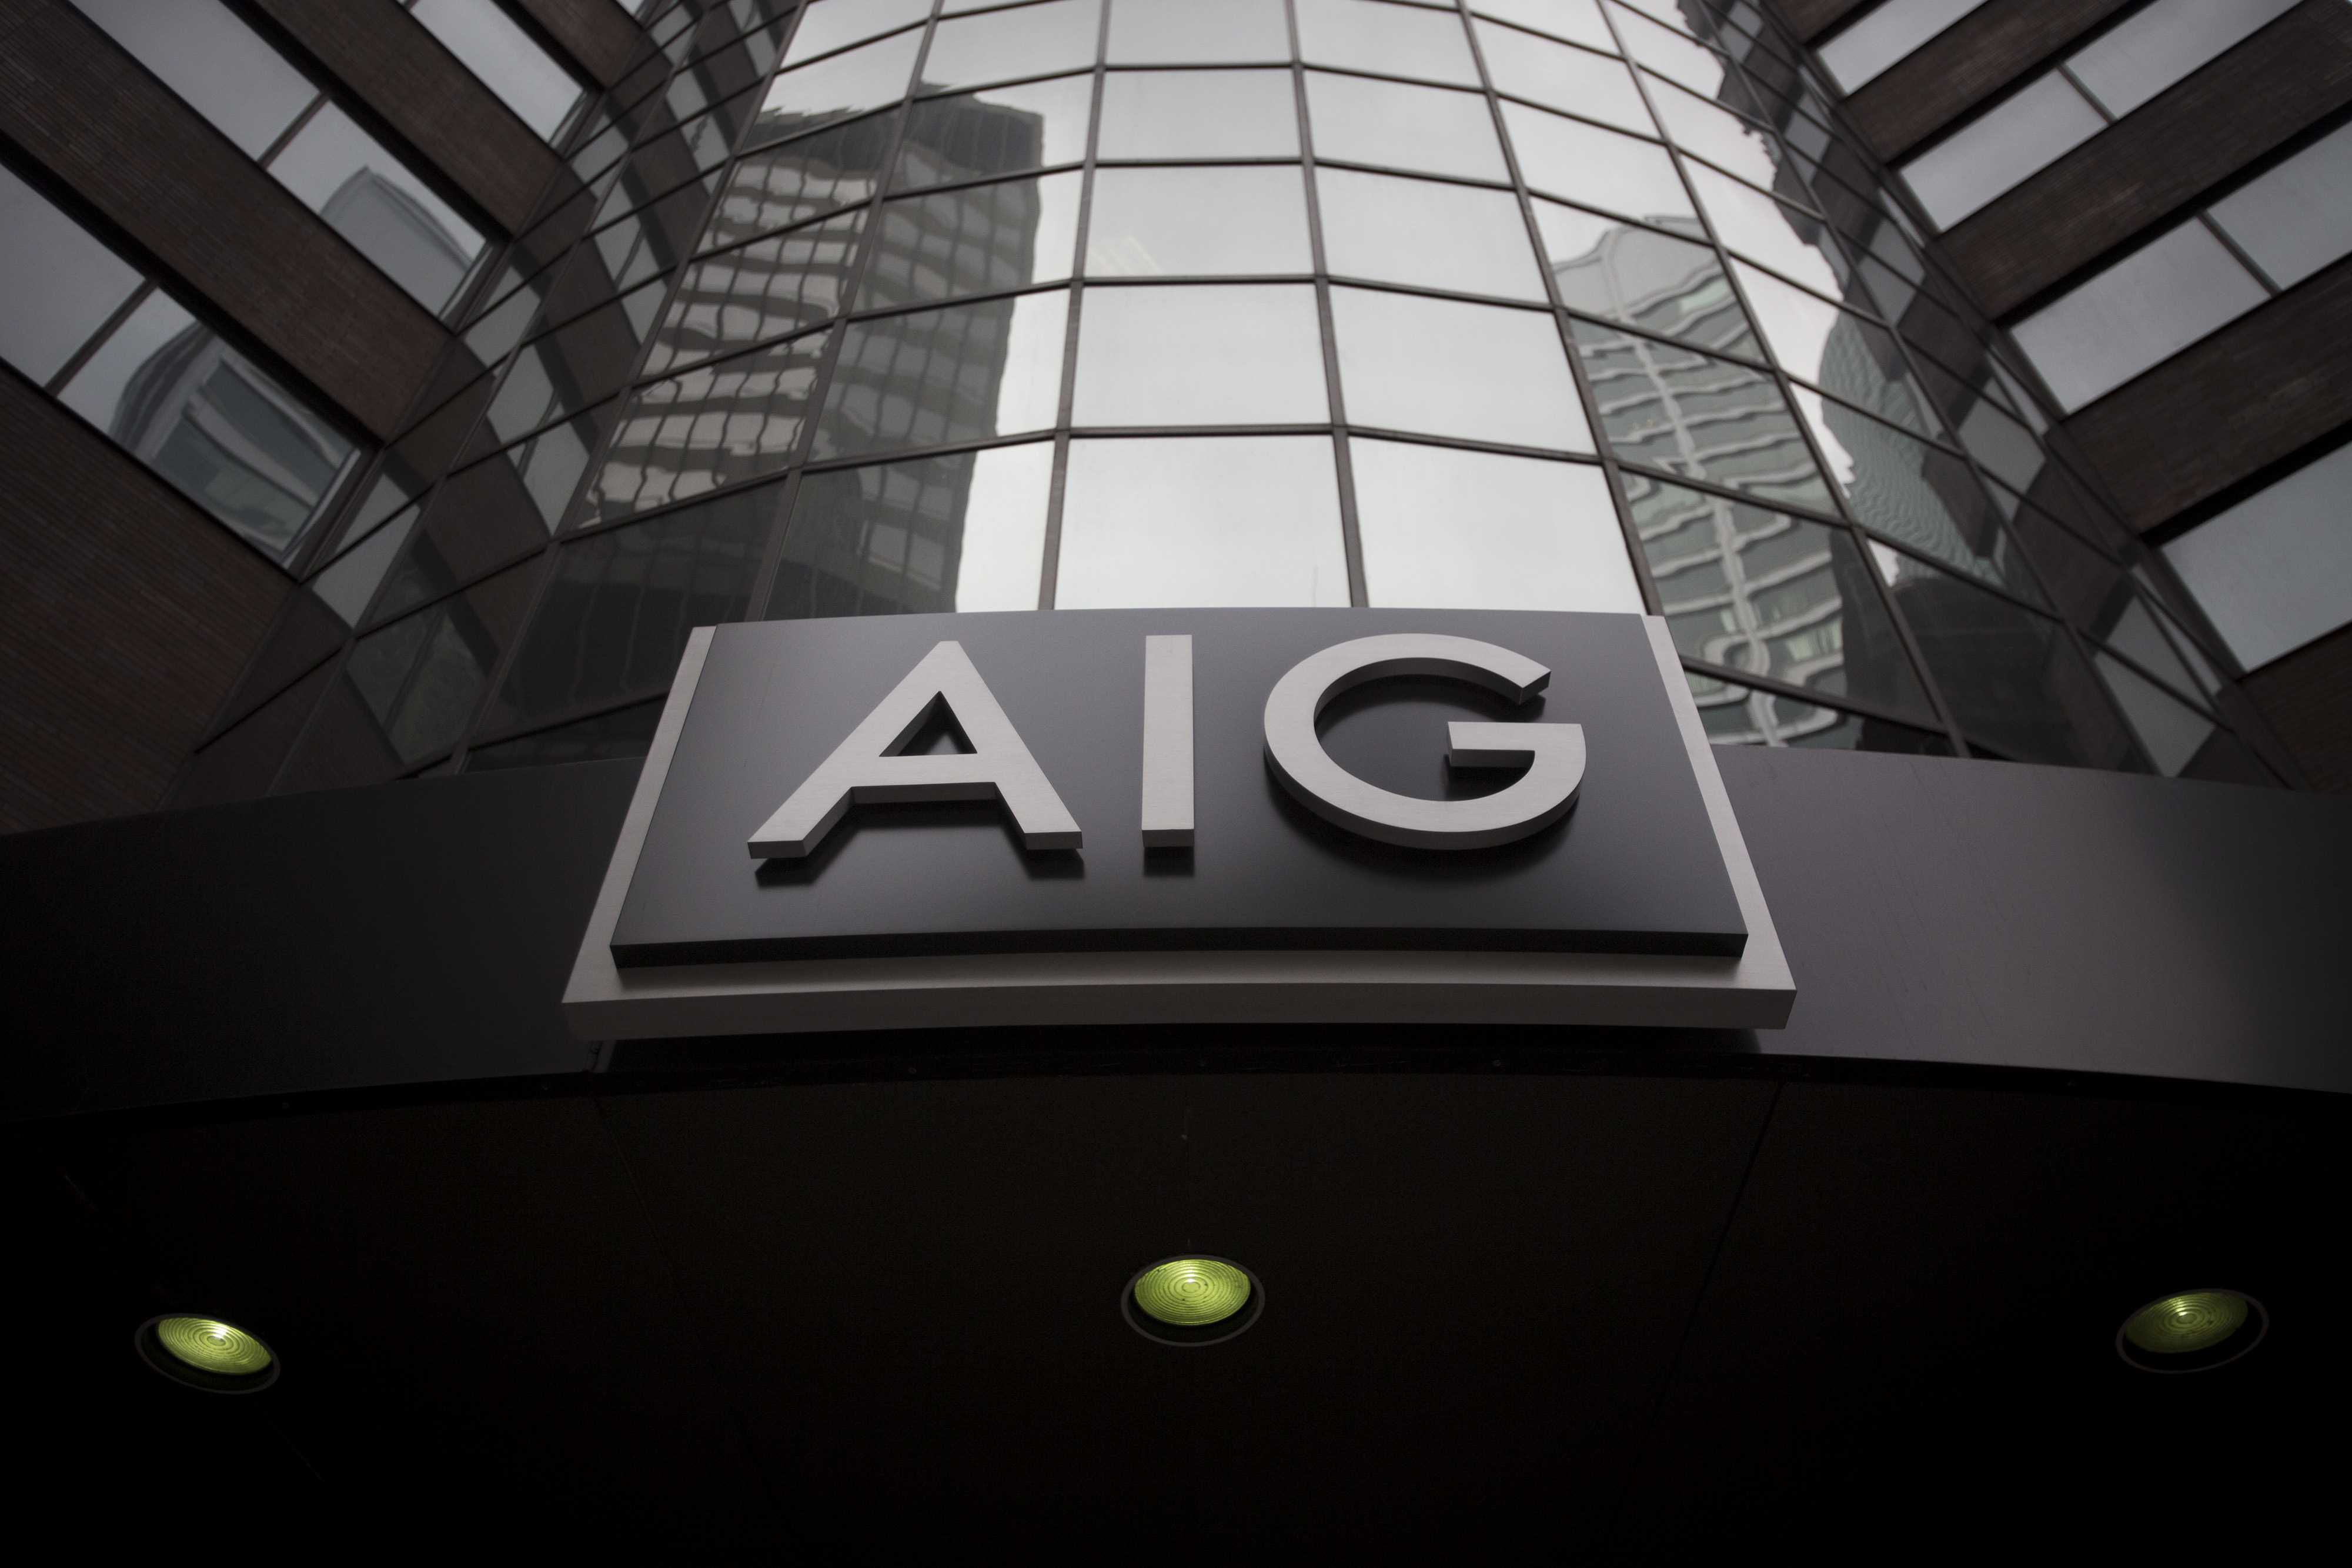 AIG seeks innovations in cyber risk, workers comp